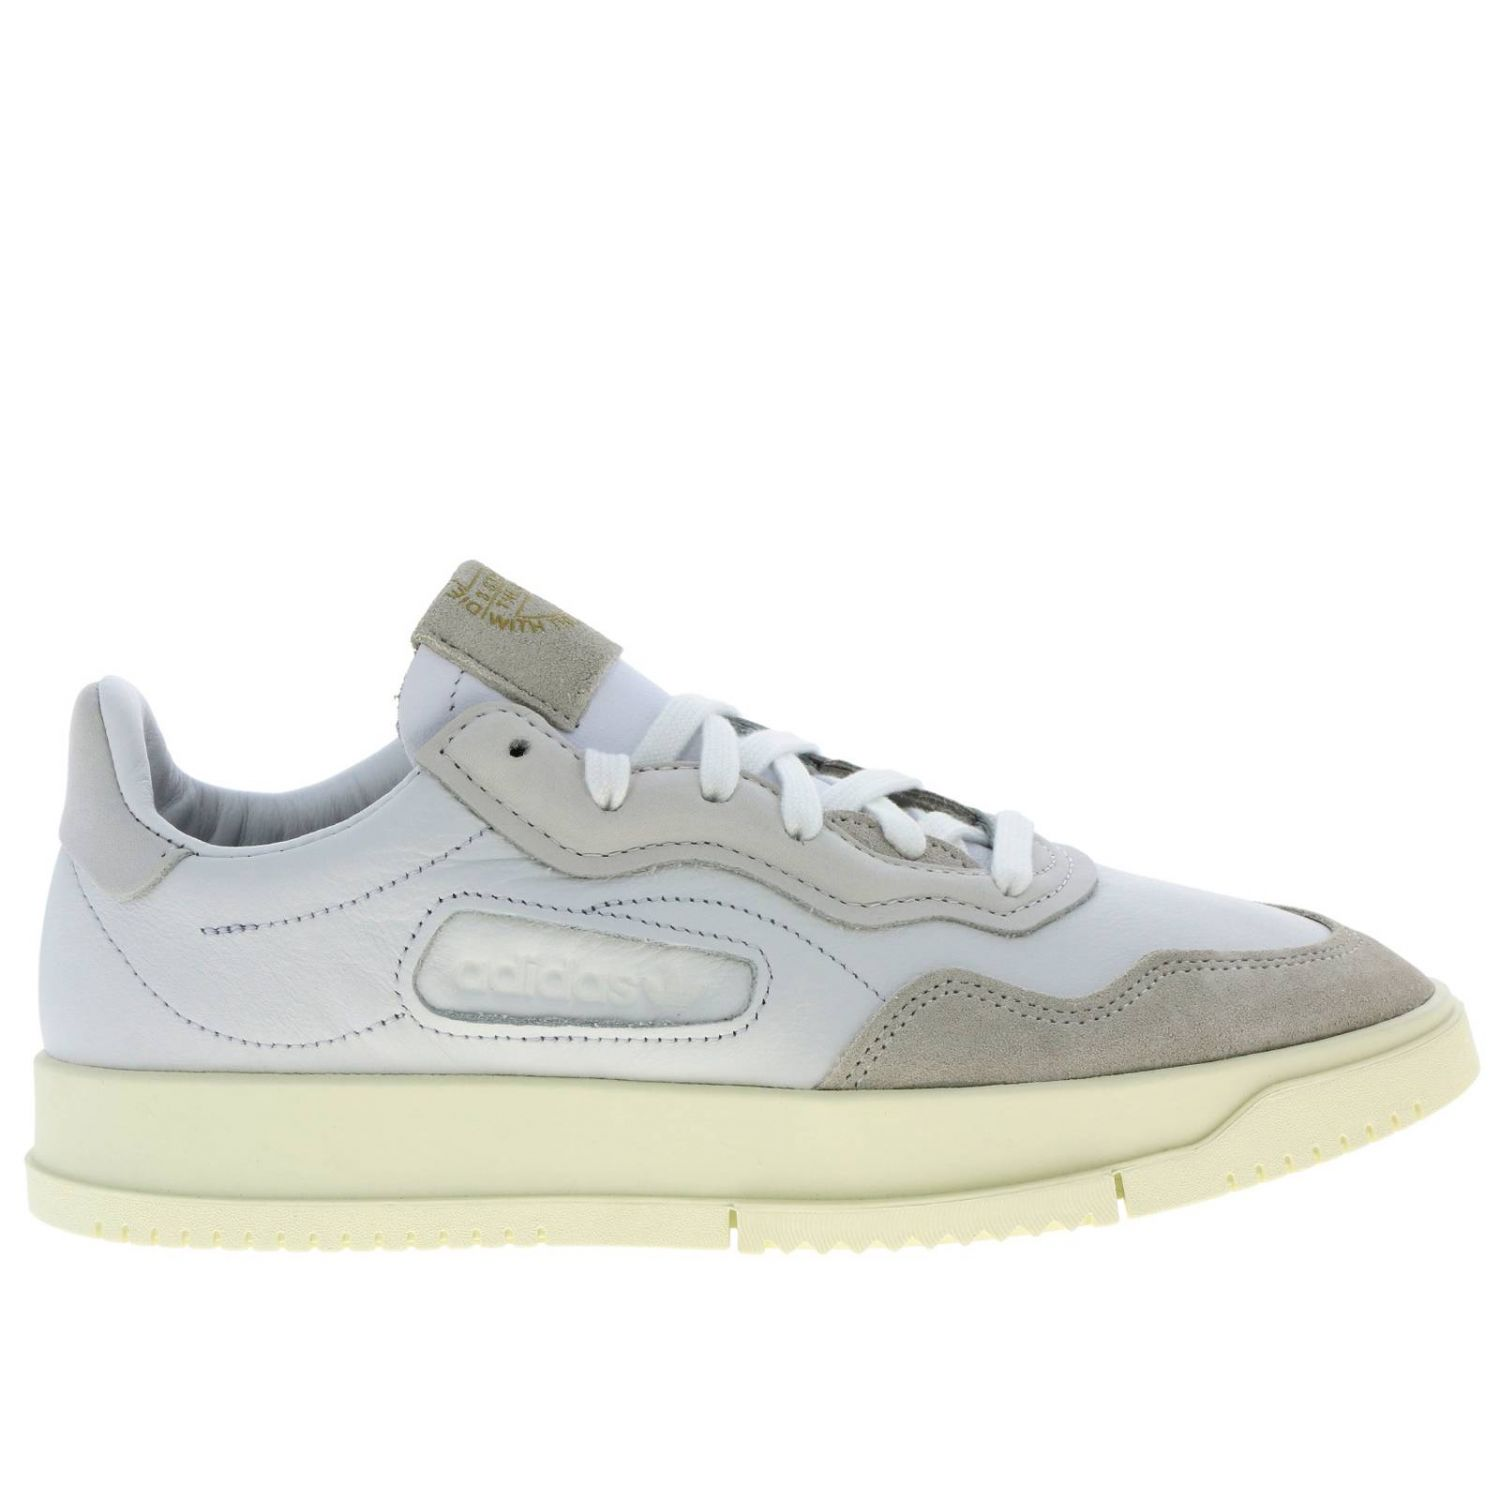 Sneakers Adidas Originals: Originals Originals Sc premiere sneakers in leather and suede white 1